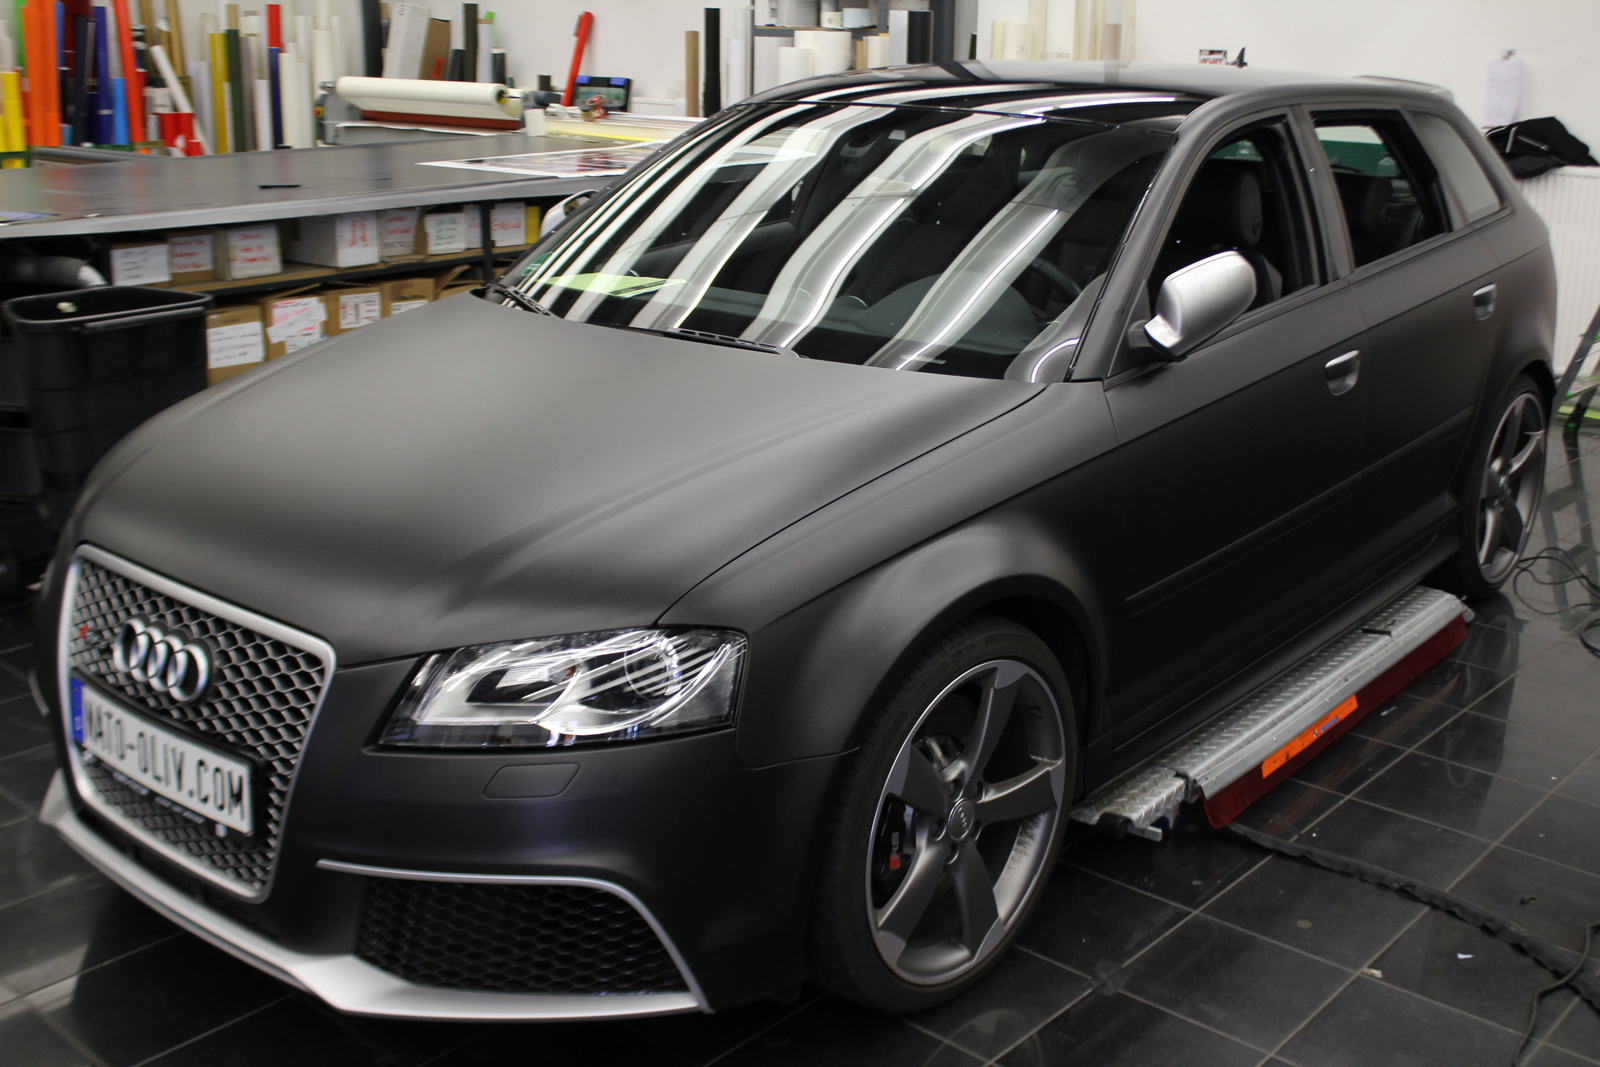 AUDI_RS3_FOLIERUNG_MIDNIGHTBLACK_METALLIC_MATT_03